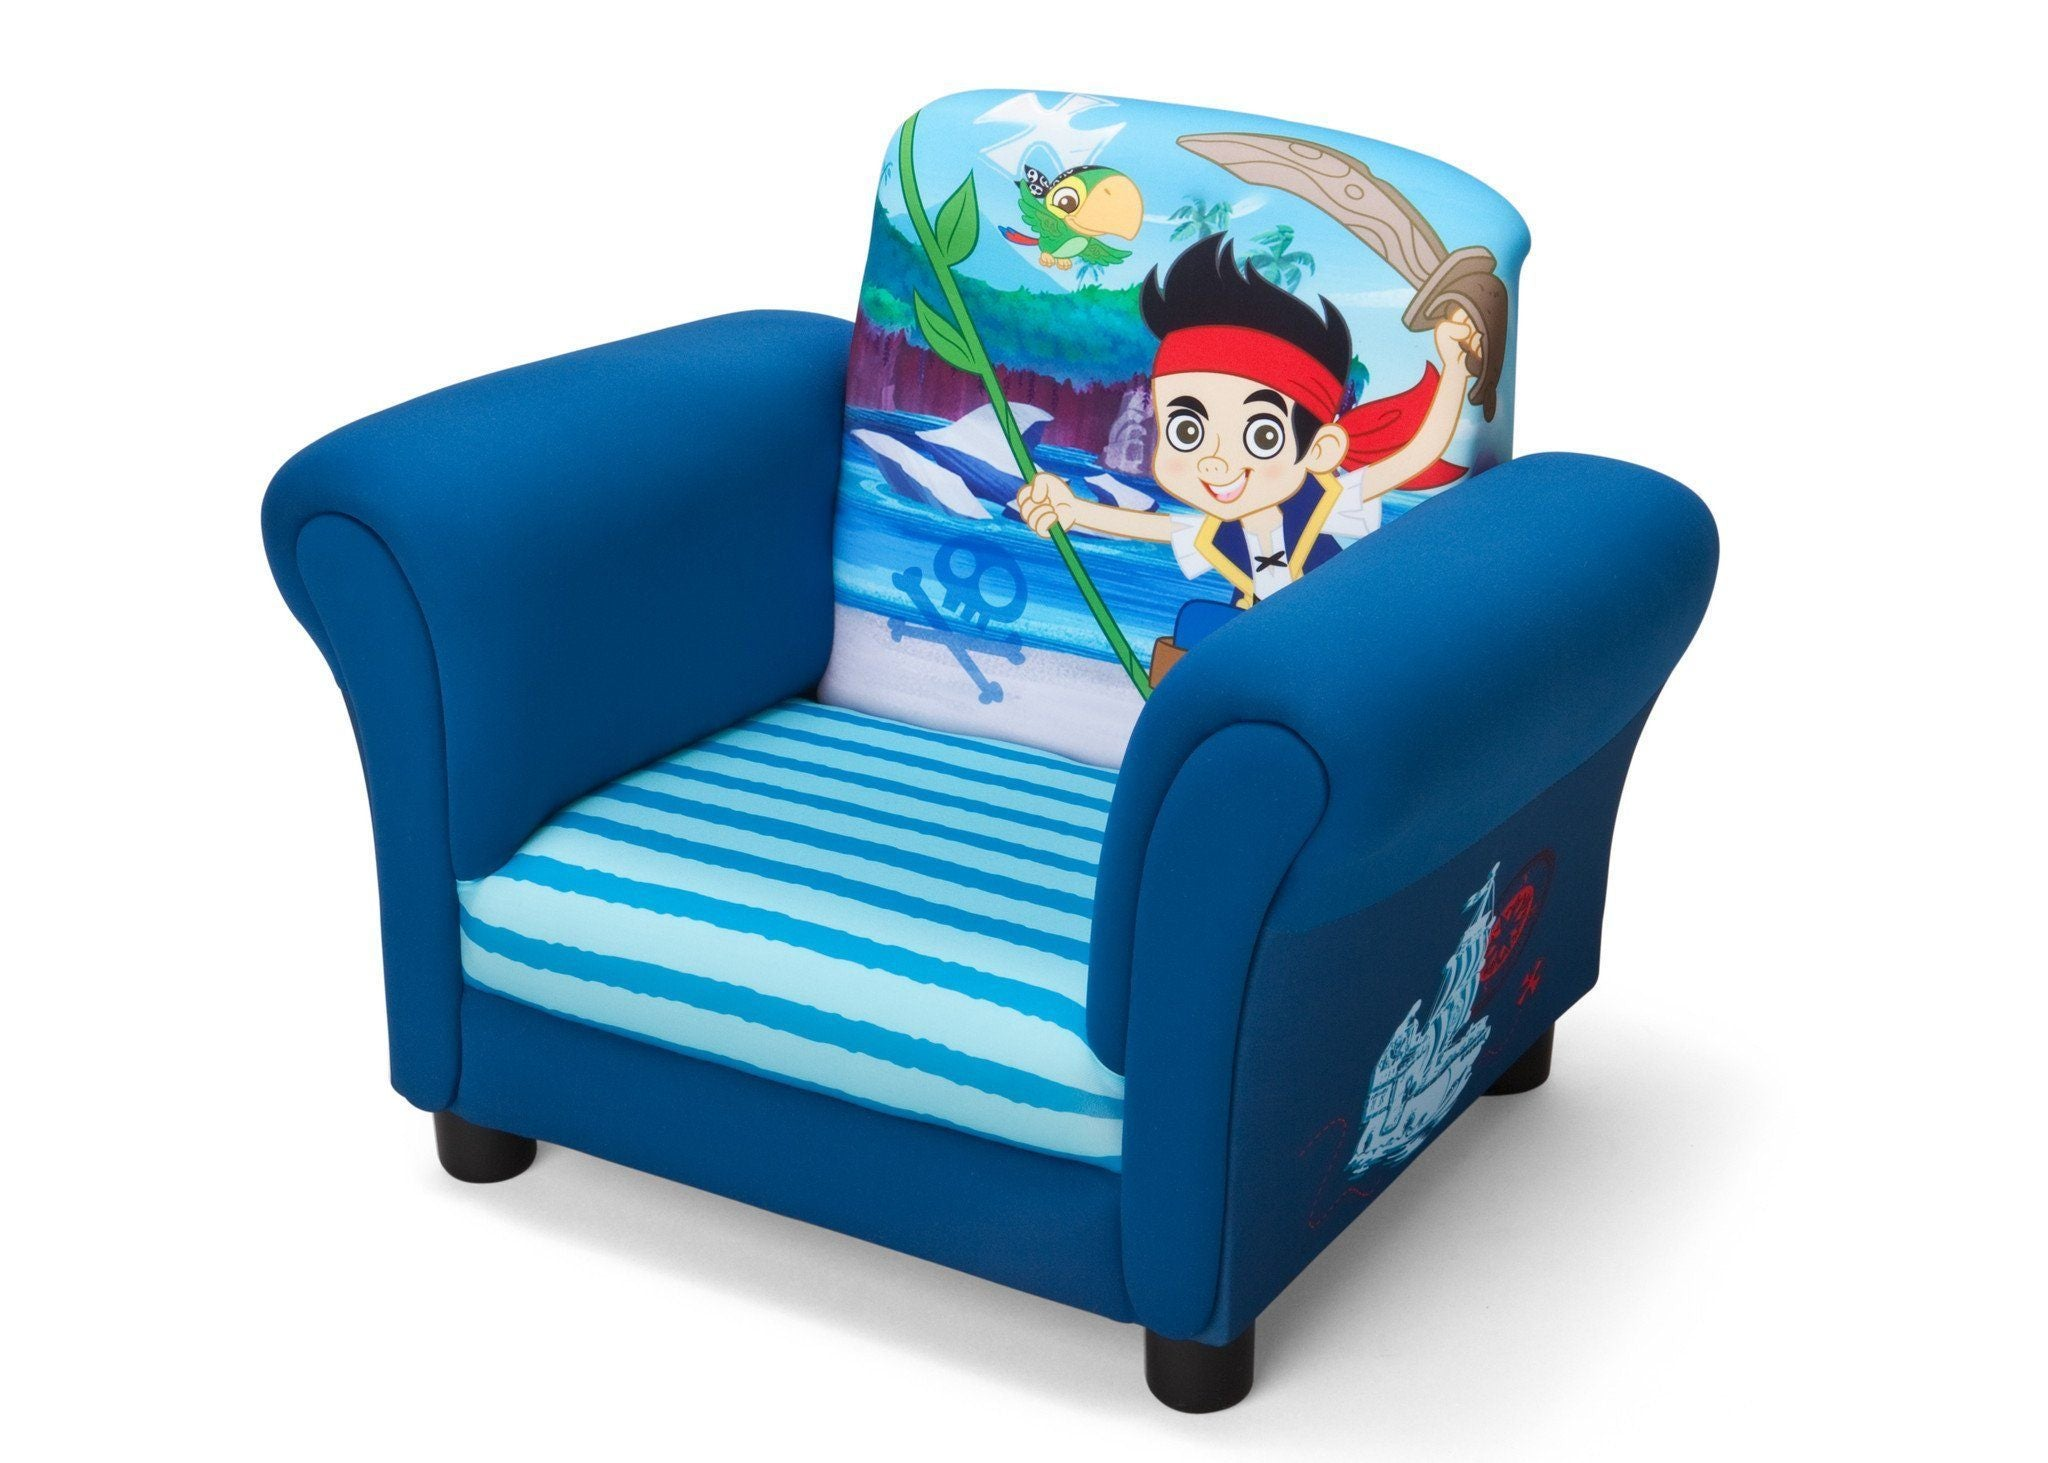 Attirant ... Delta Children Style 1 Jake And The Neverland Pirates Upholstered  Recliner Chair, Left View A2a